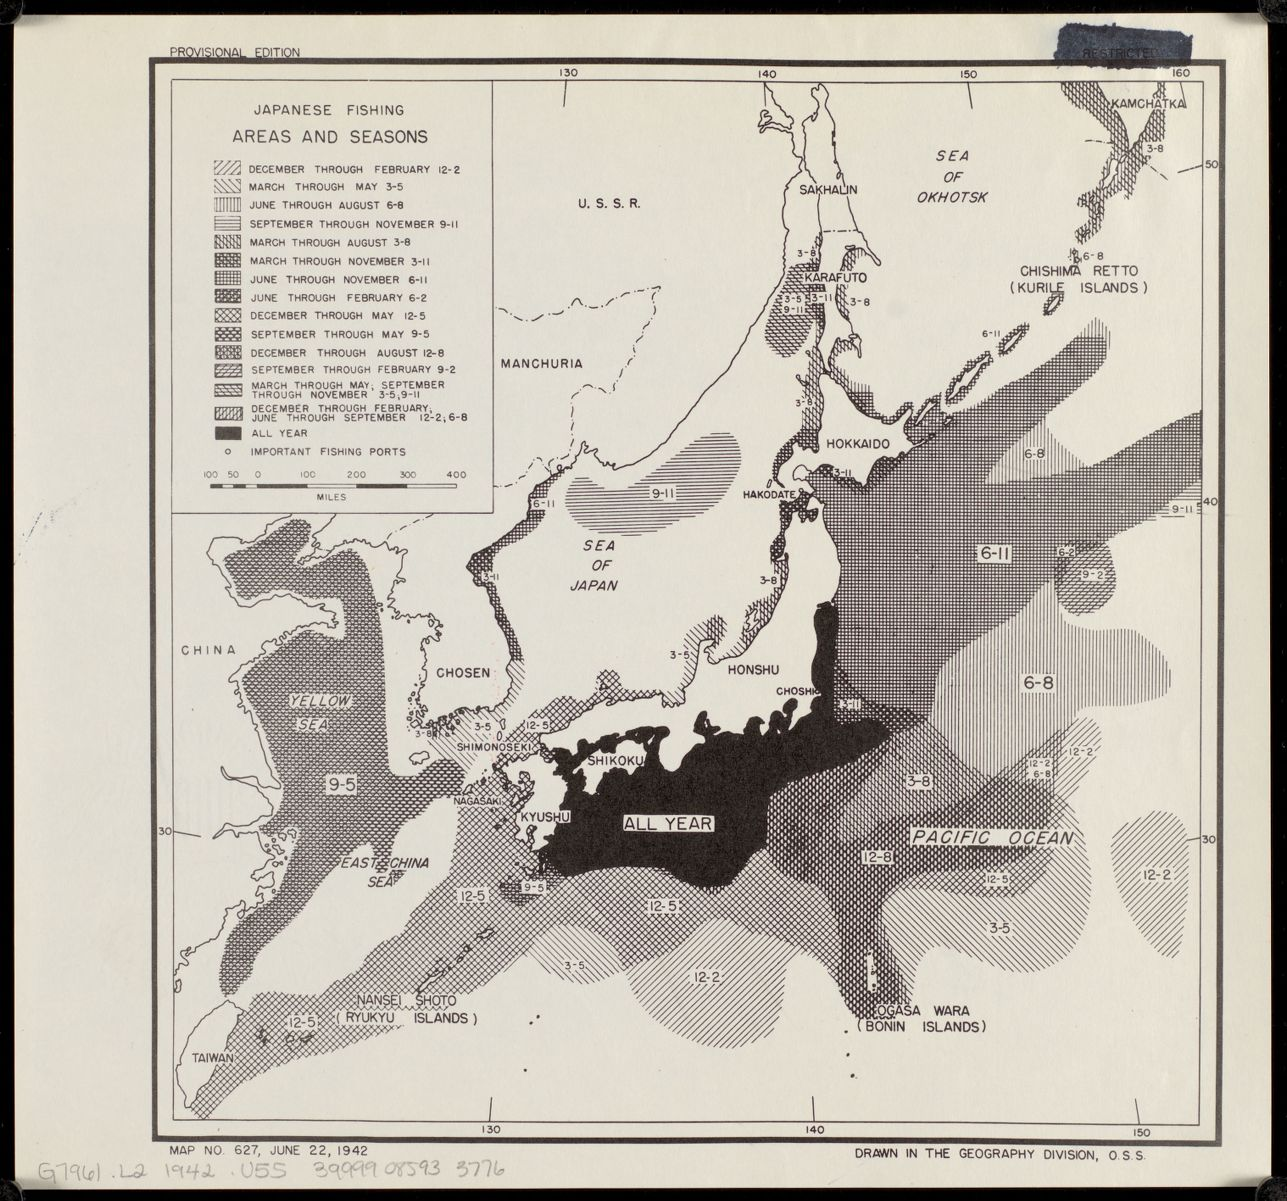 United States. Office of Strategic Services. Geography Division. Japanese fishing, areas and seasons. 1942.